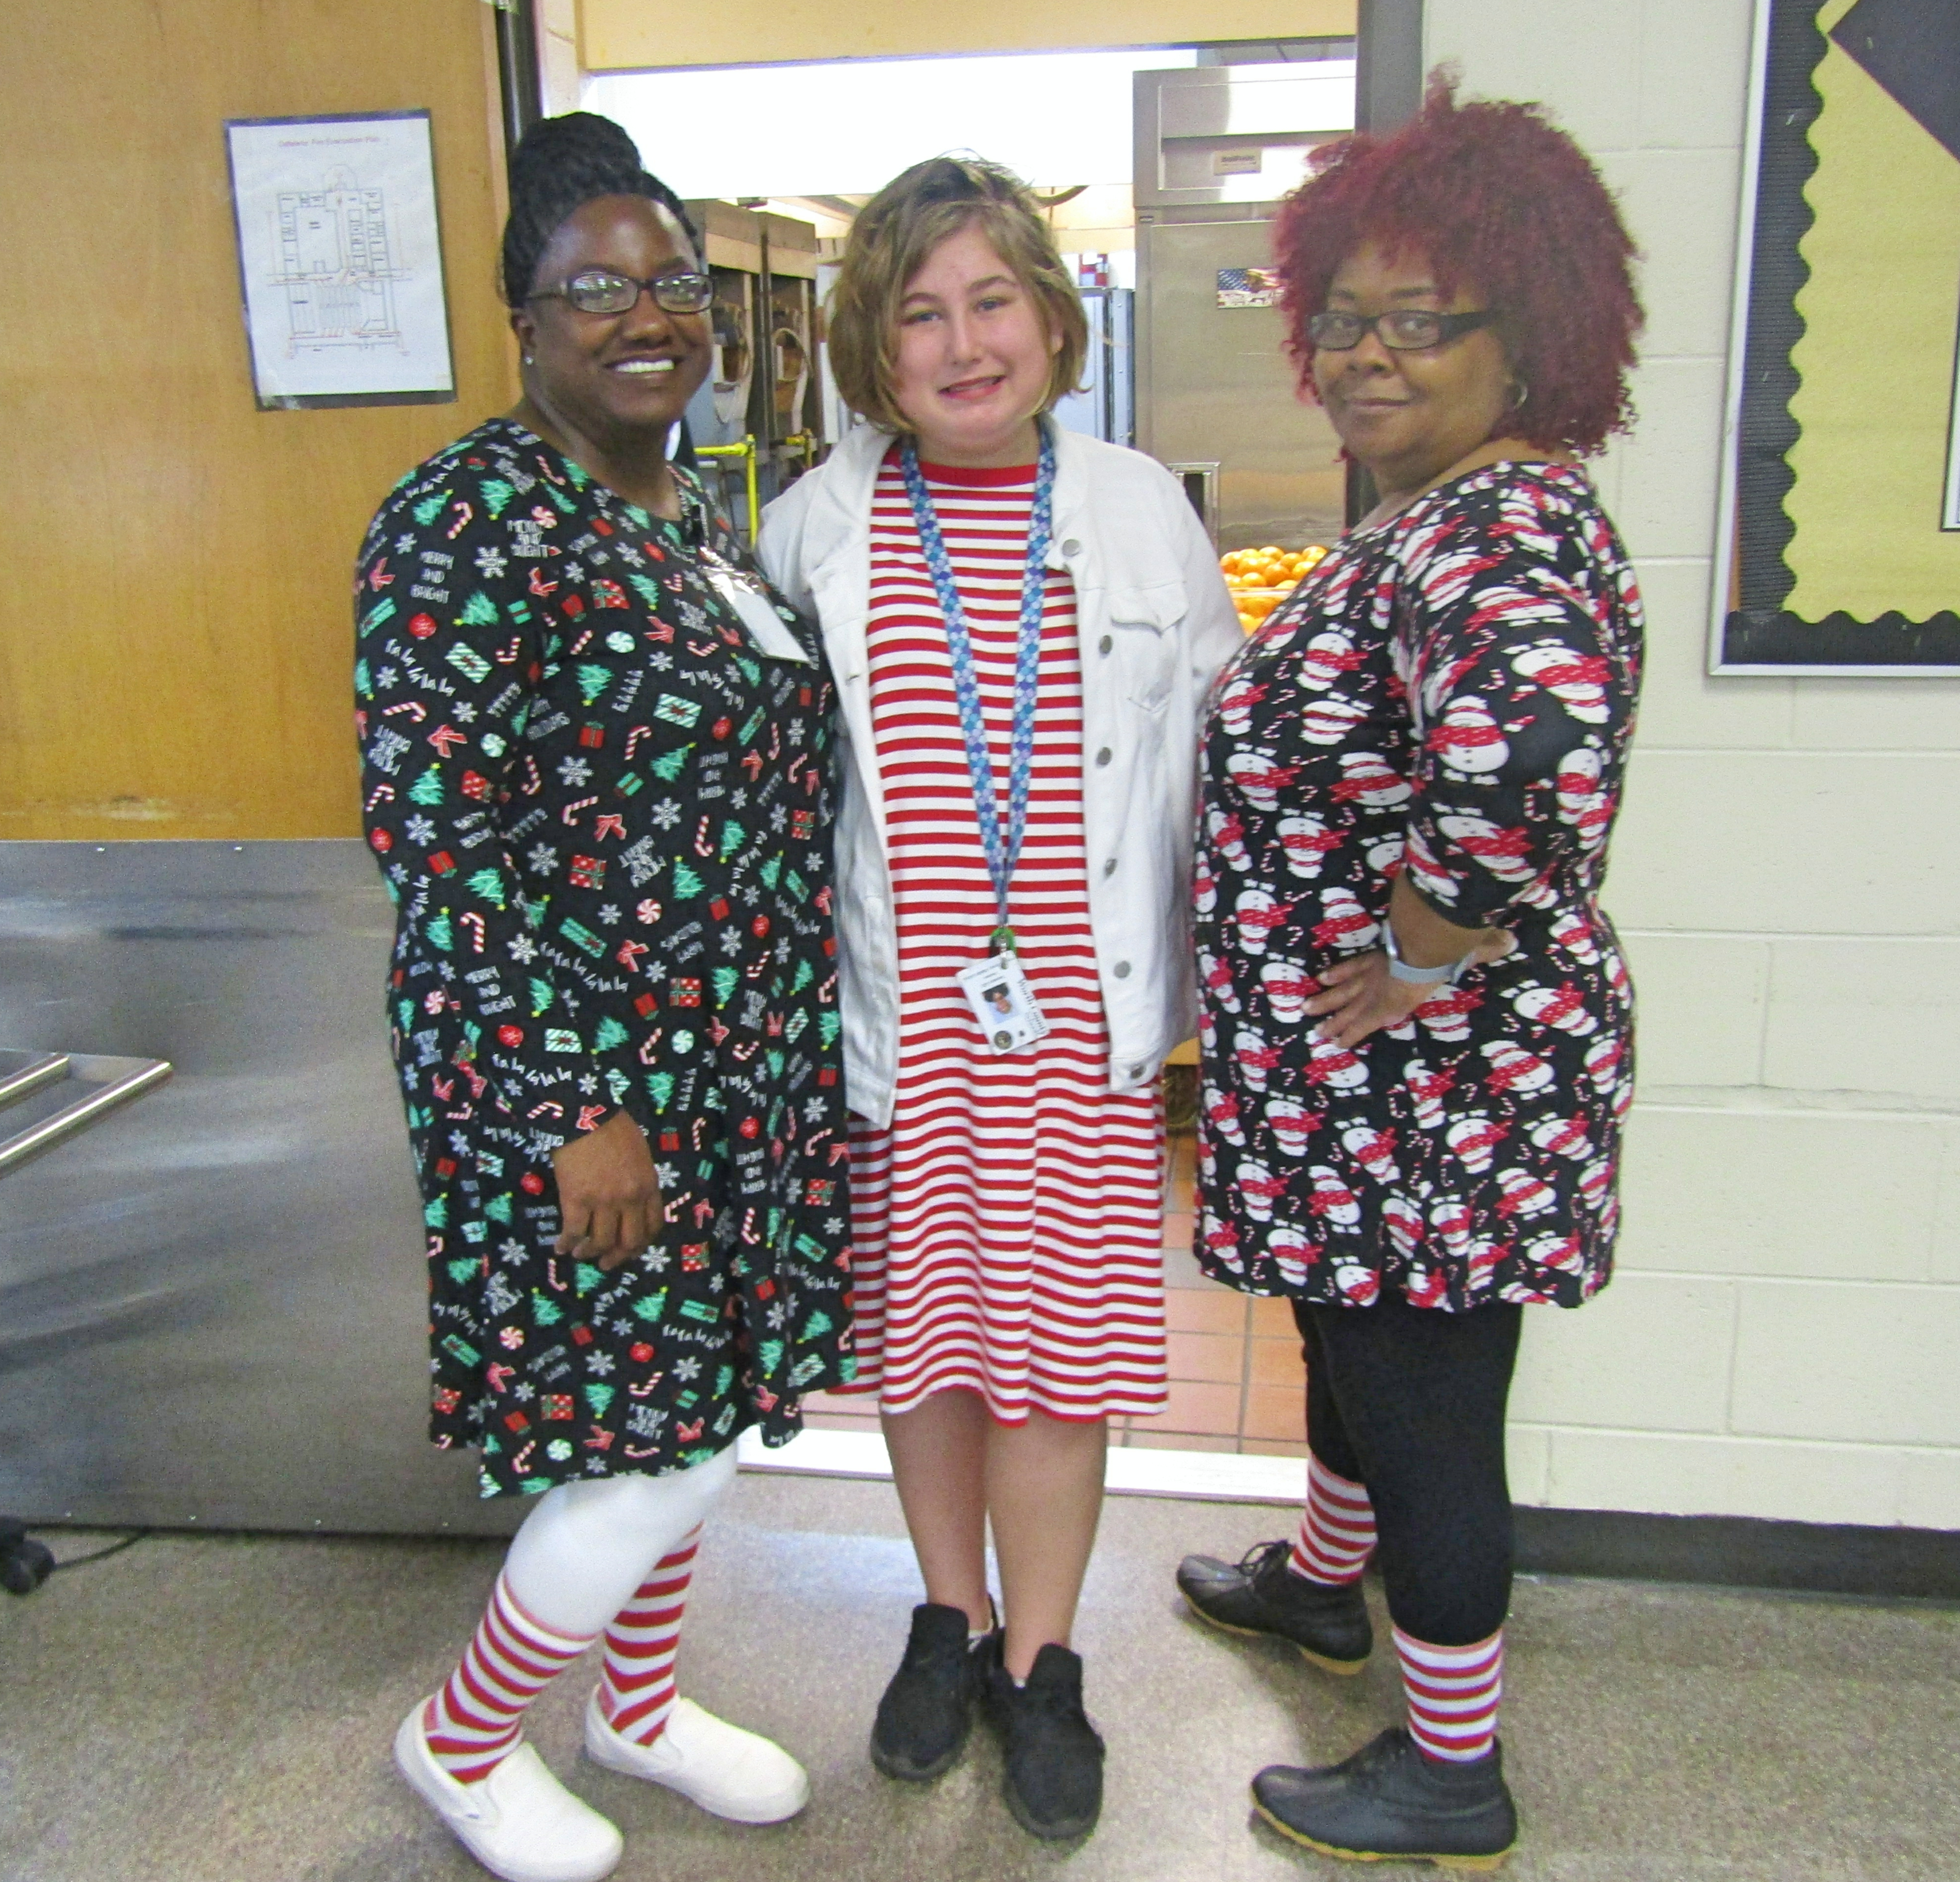 Twelve Days of Christmas - Candy Cane - Wear Red and White (12th day)